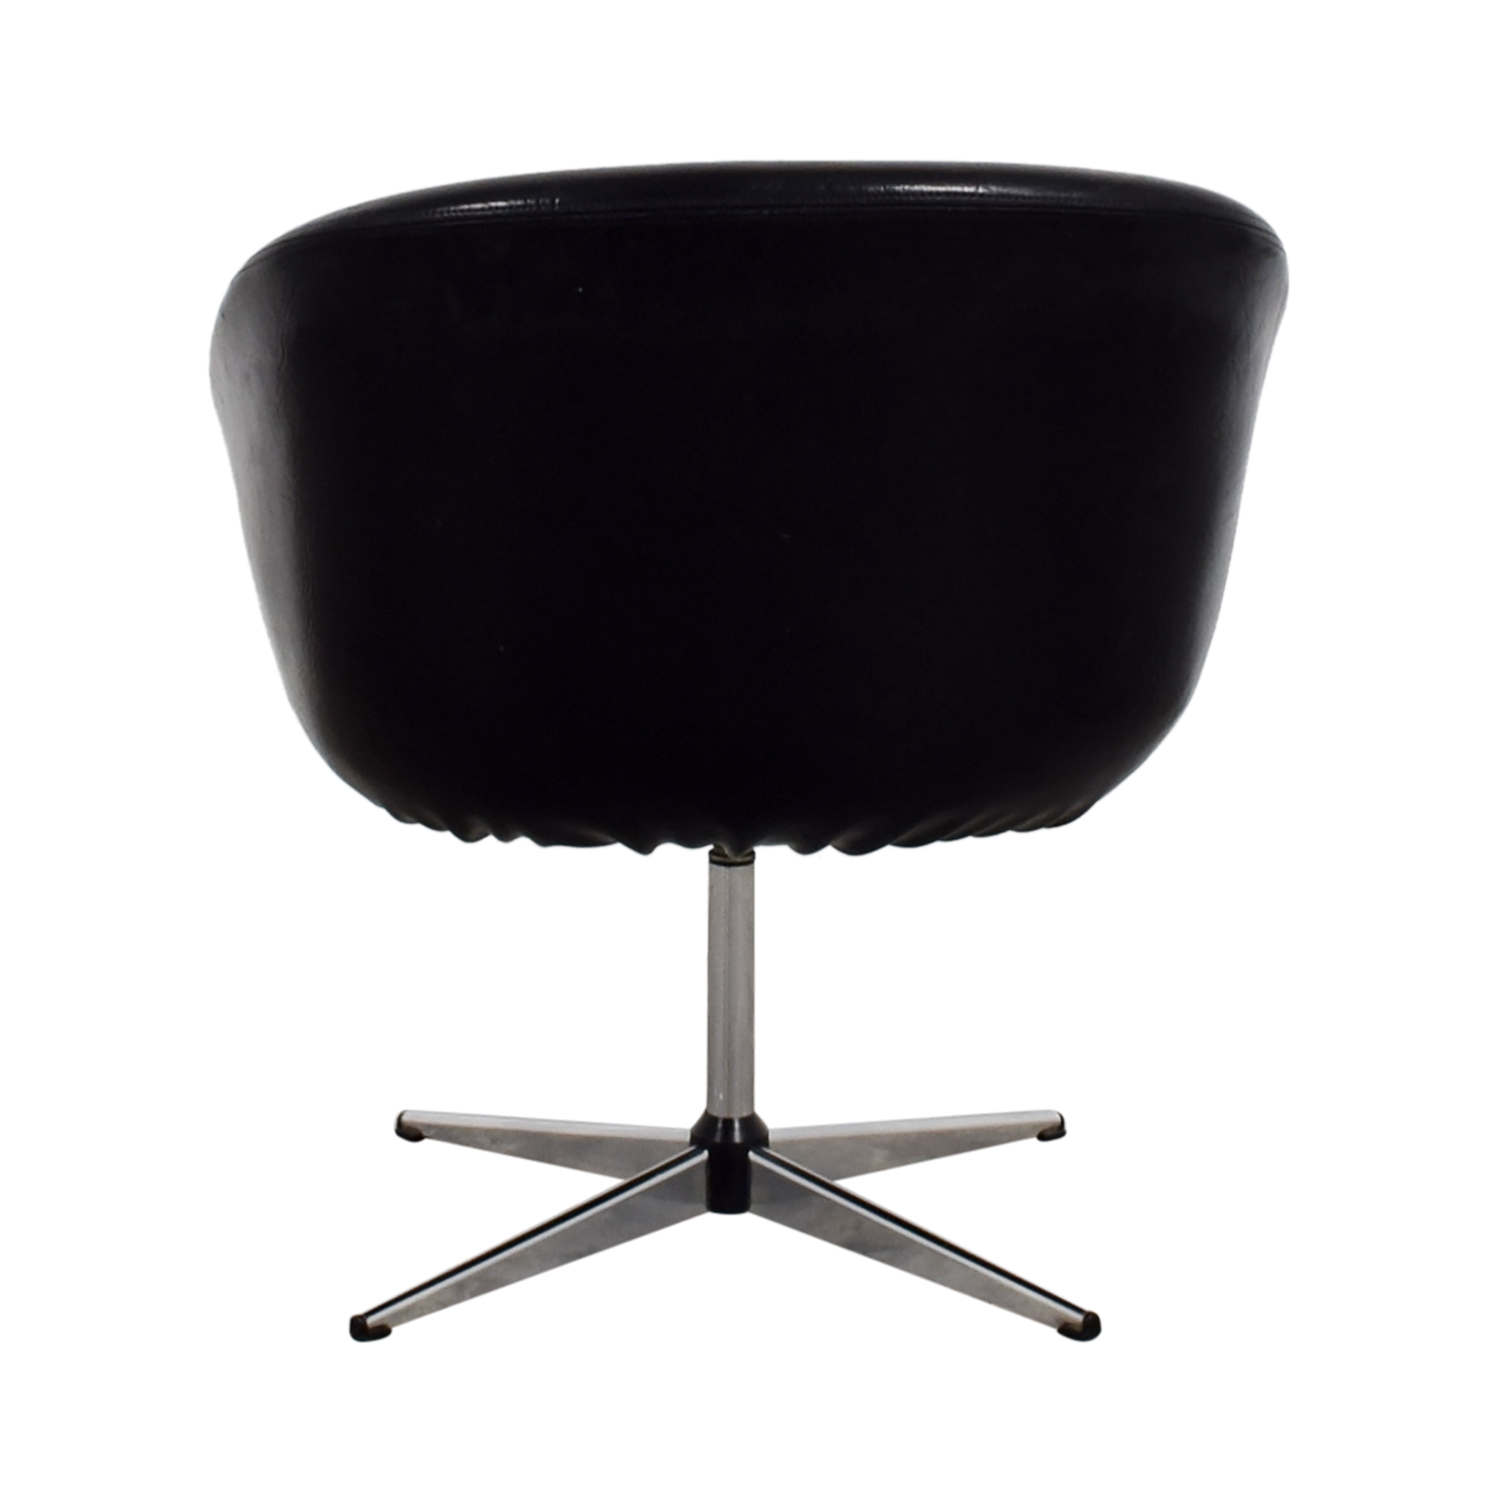 revolving chair used covers kmart 66 off inmod jacobsen orange egg chairs by design modern black nj